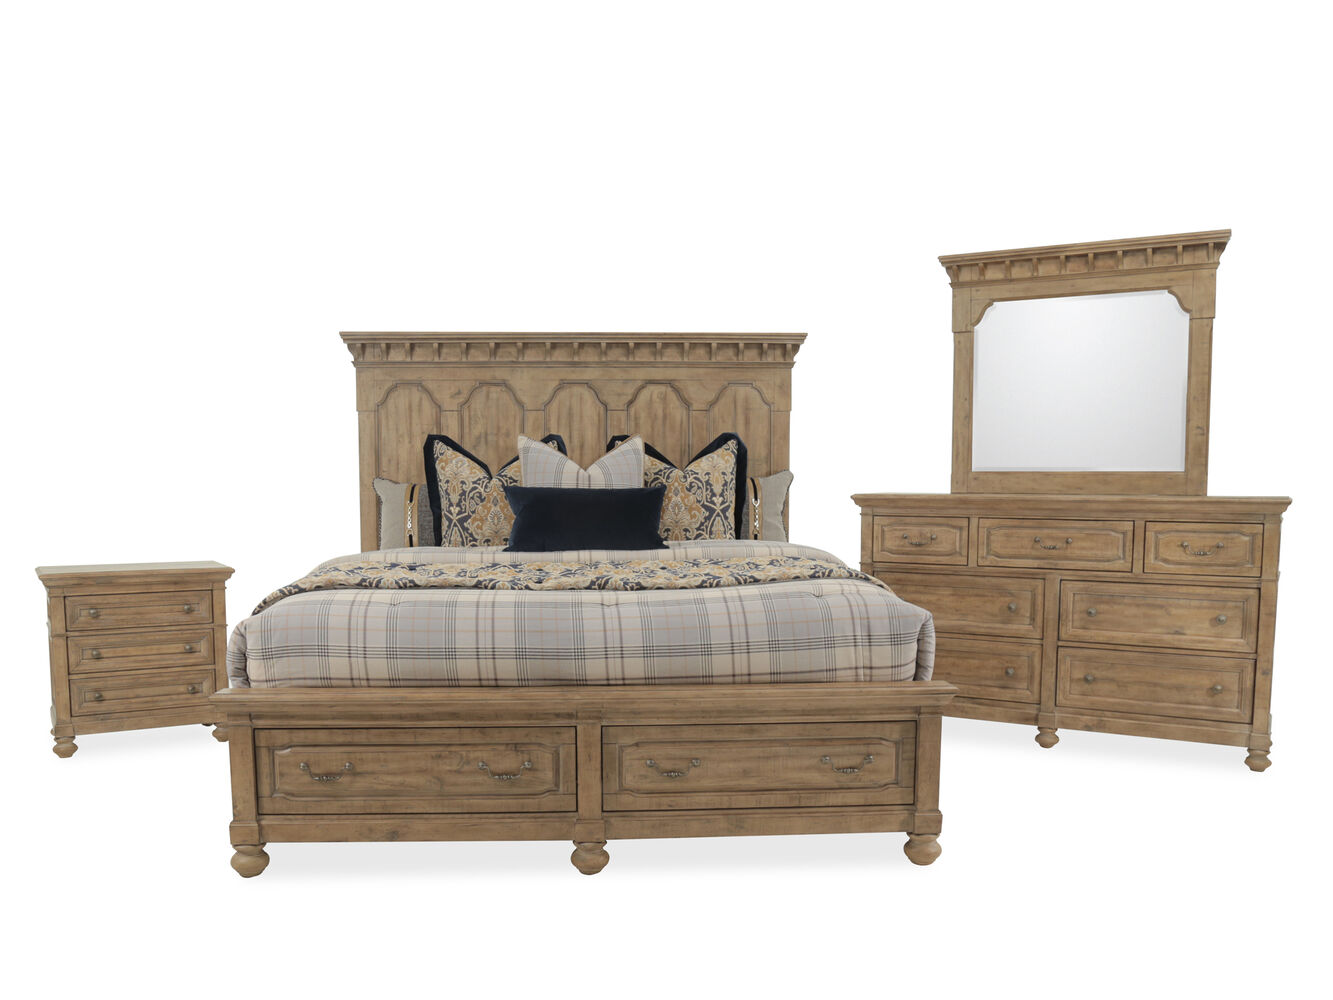 FourPiece Traditional Bedroom Set In Brown Mathis Brothers - Magnussen bedroom furniture reviews